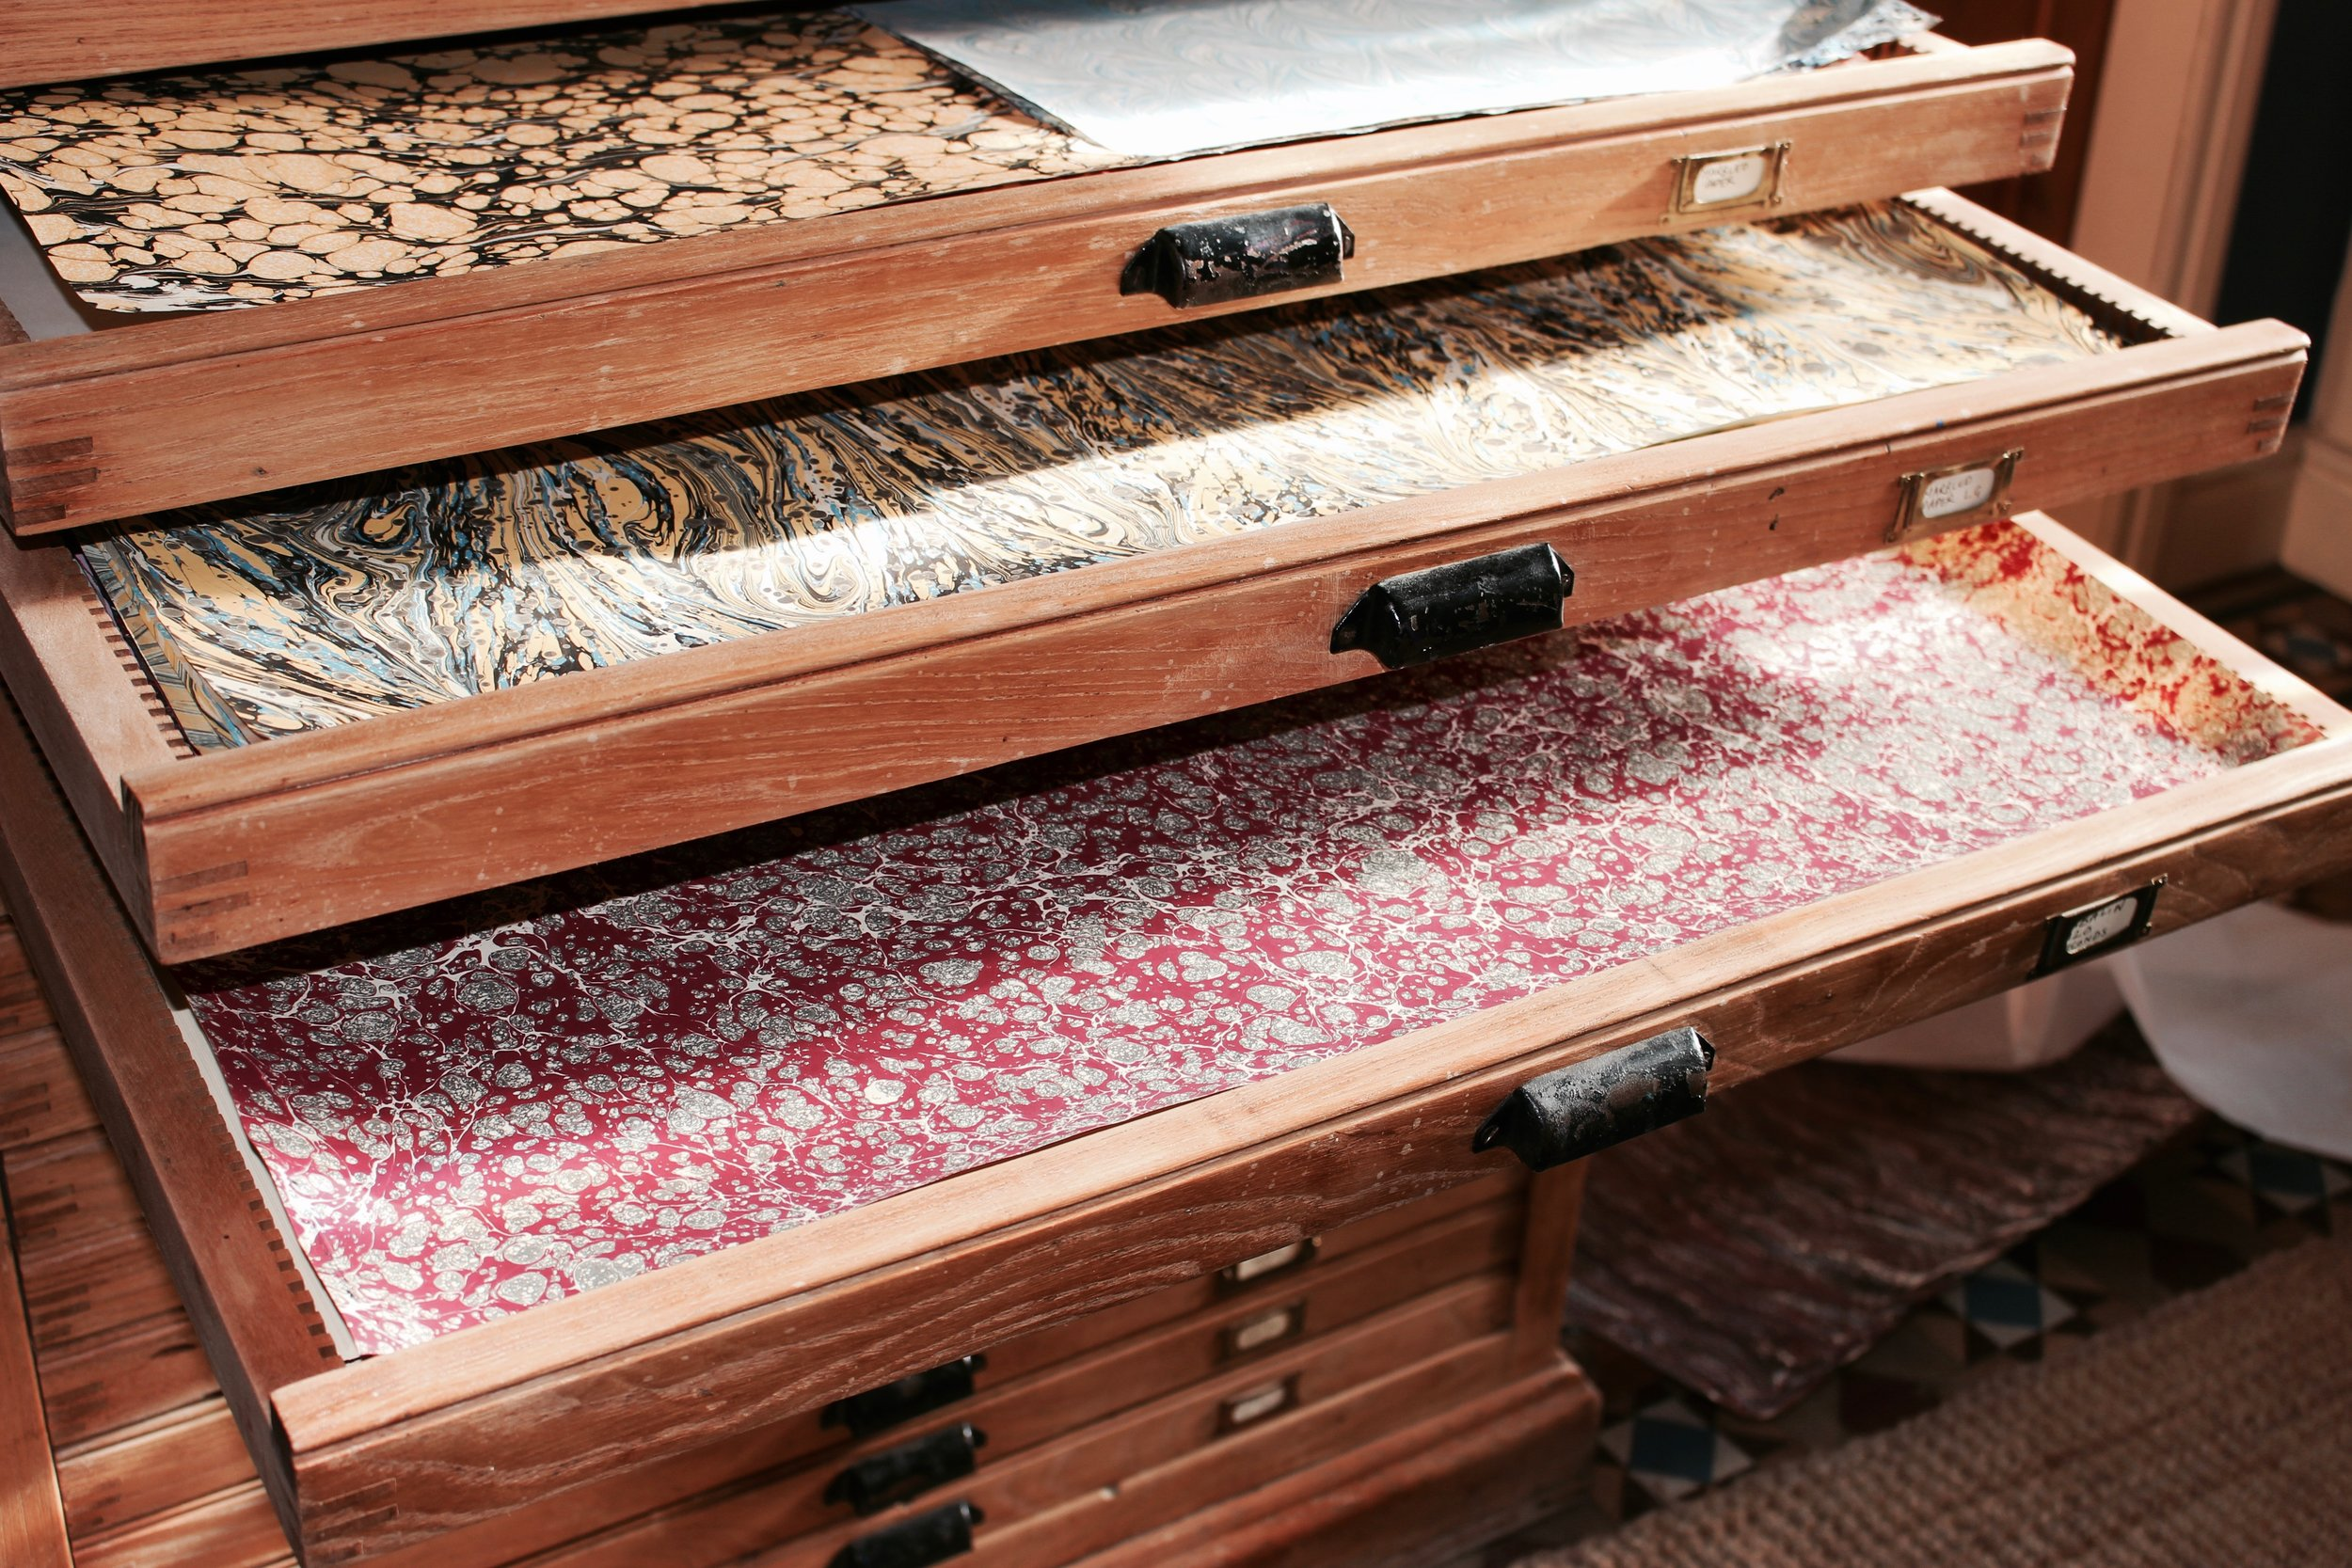 The history and  process of marbling